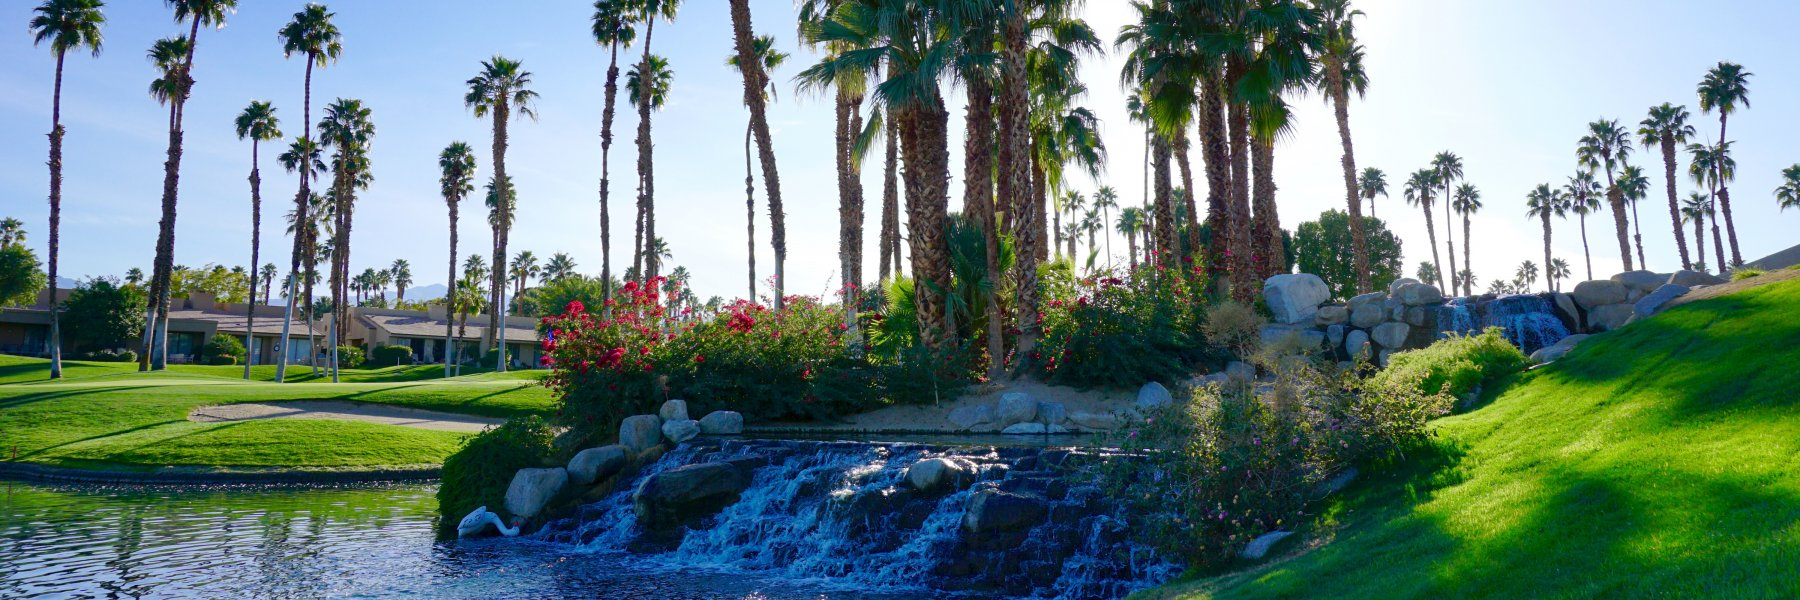 Palm Valley Country Club is a community of homes in Palm Desert California